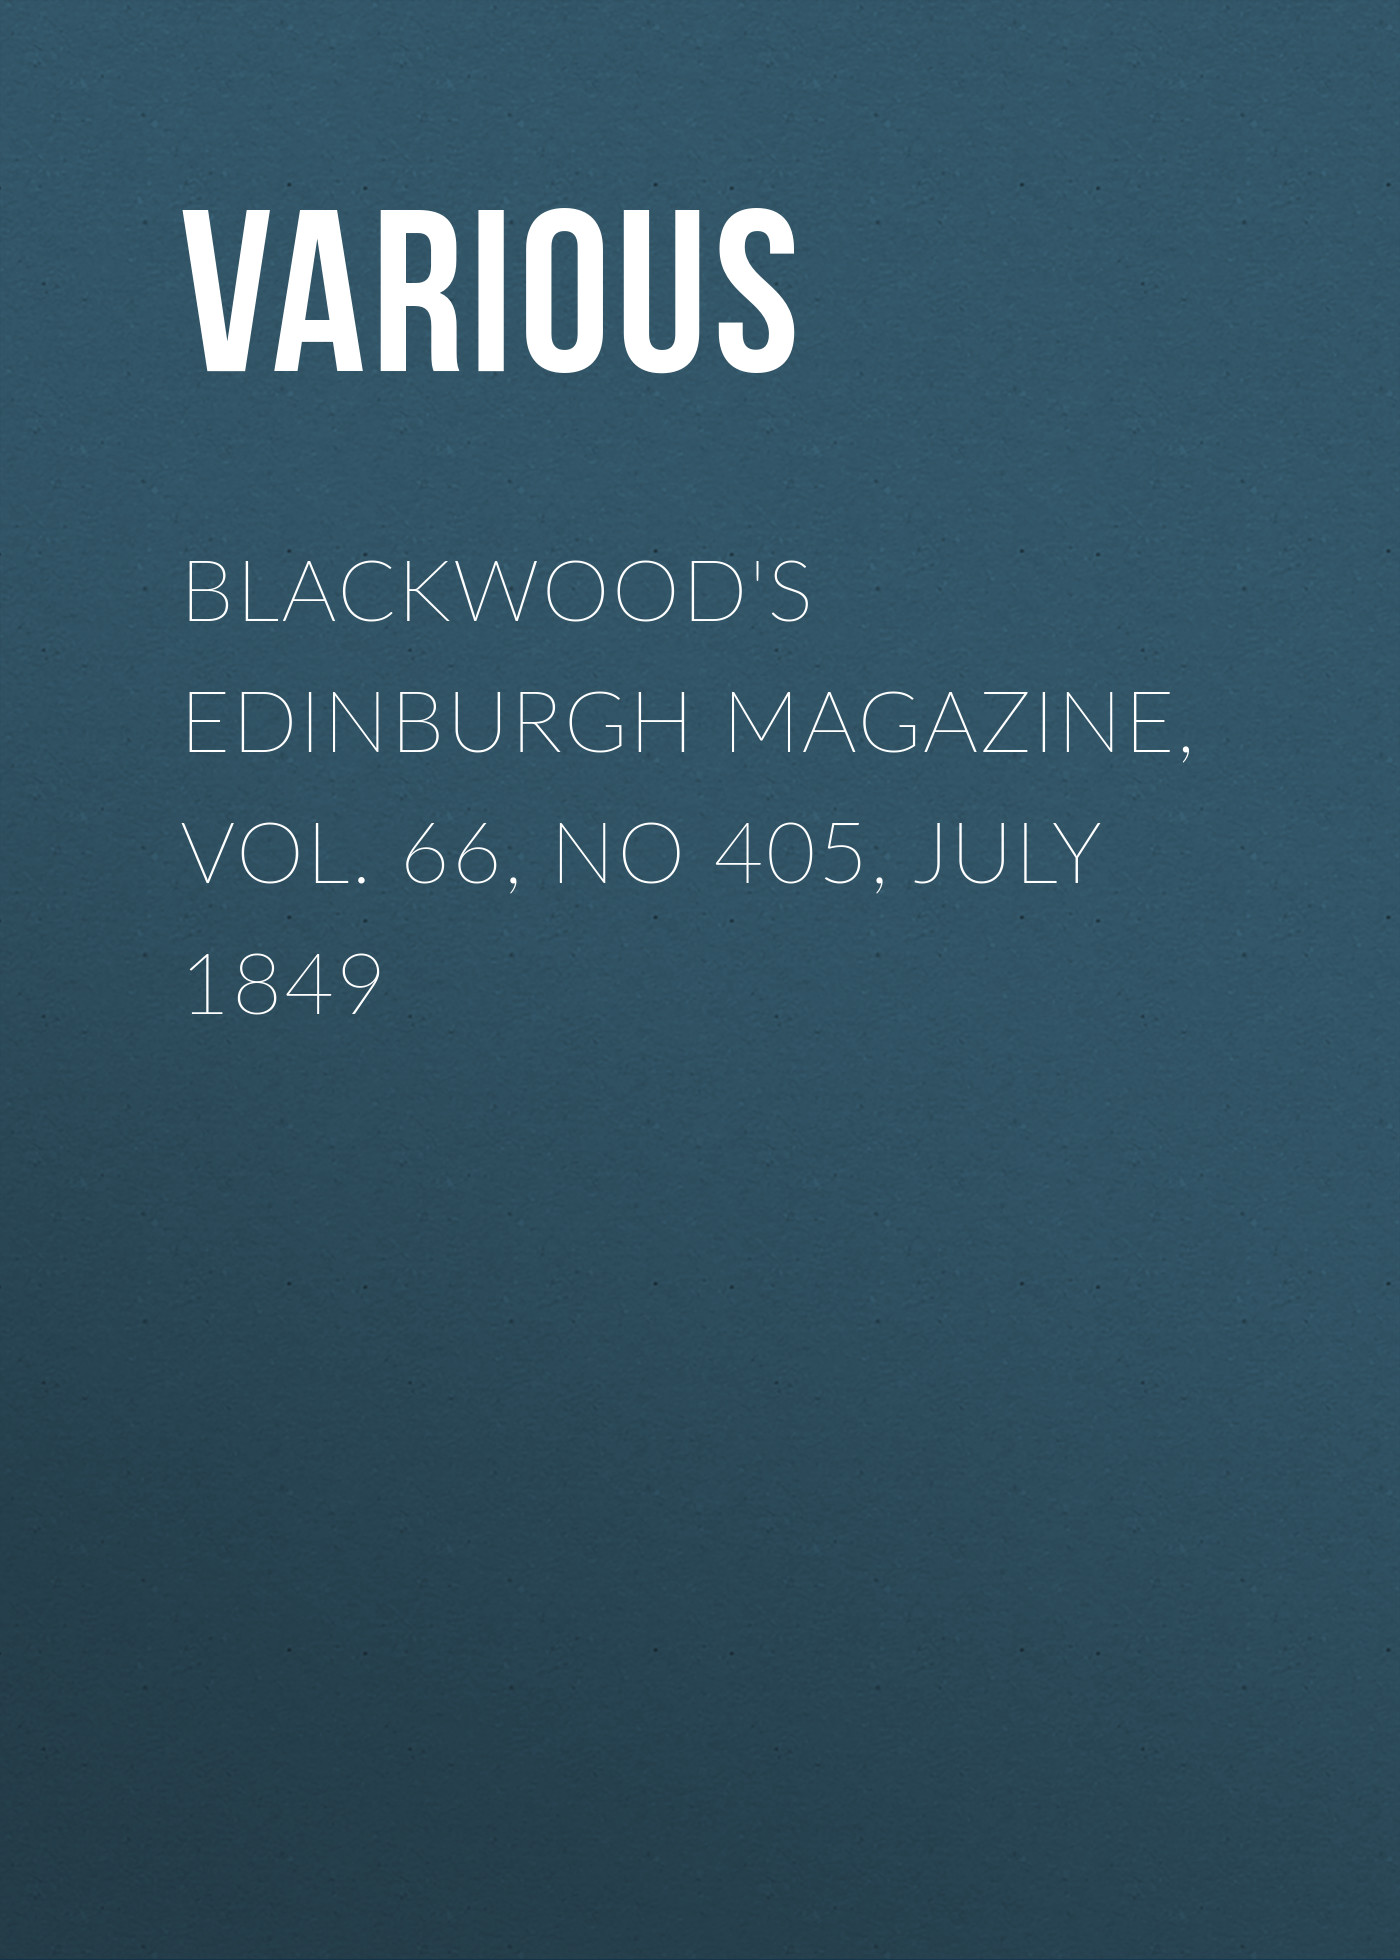 лучшая цена Various Blackwood's Edinburgh Magazine, Vol. 66, No 405, July 1849